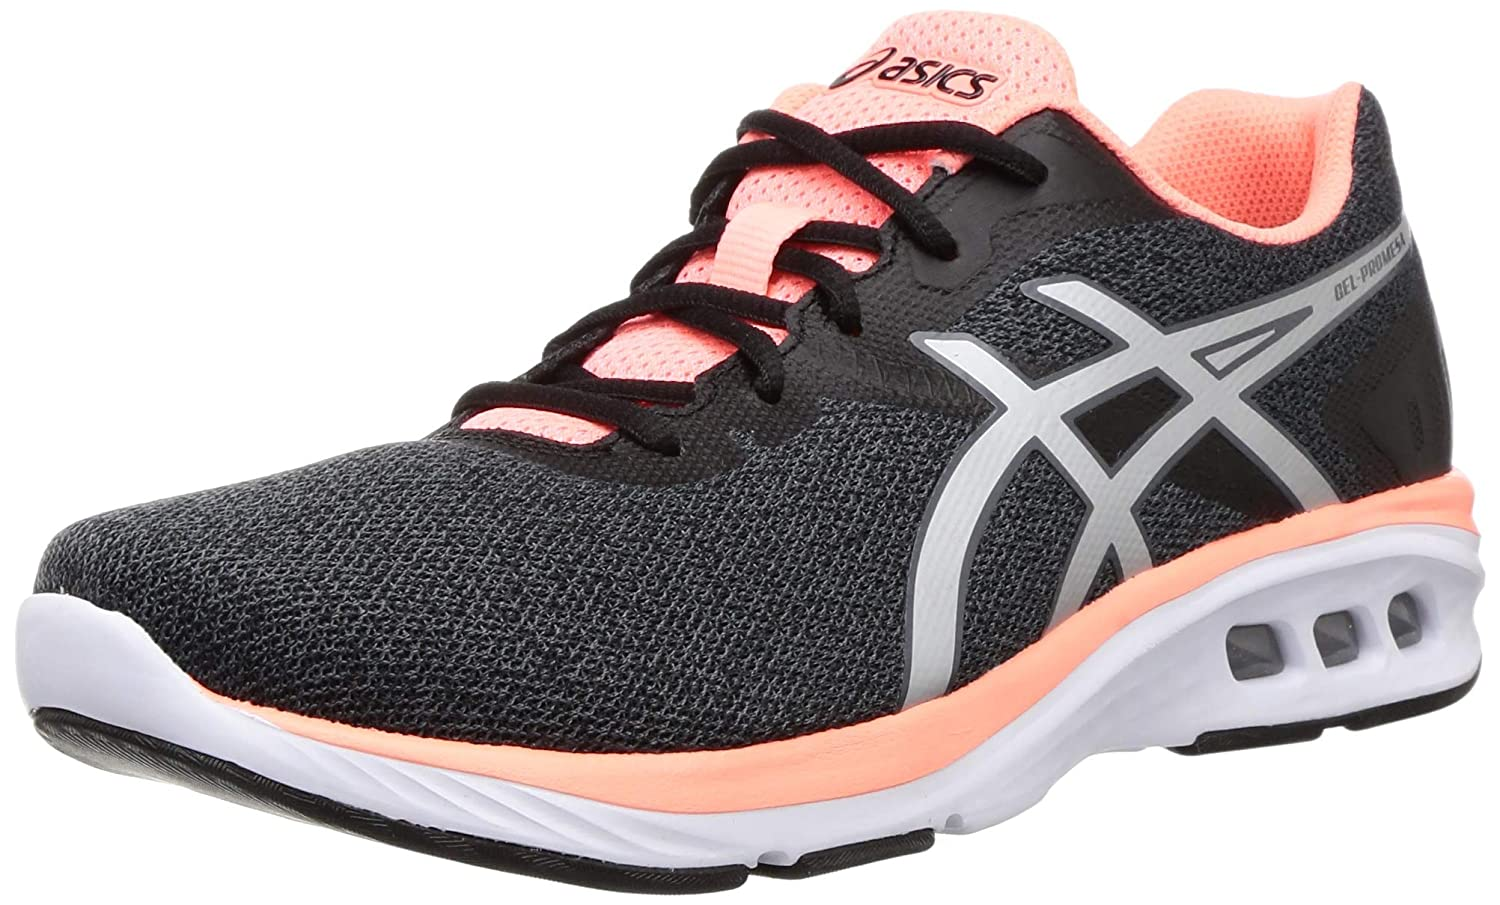 asics colorful running shoes womens 2019